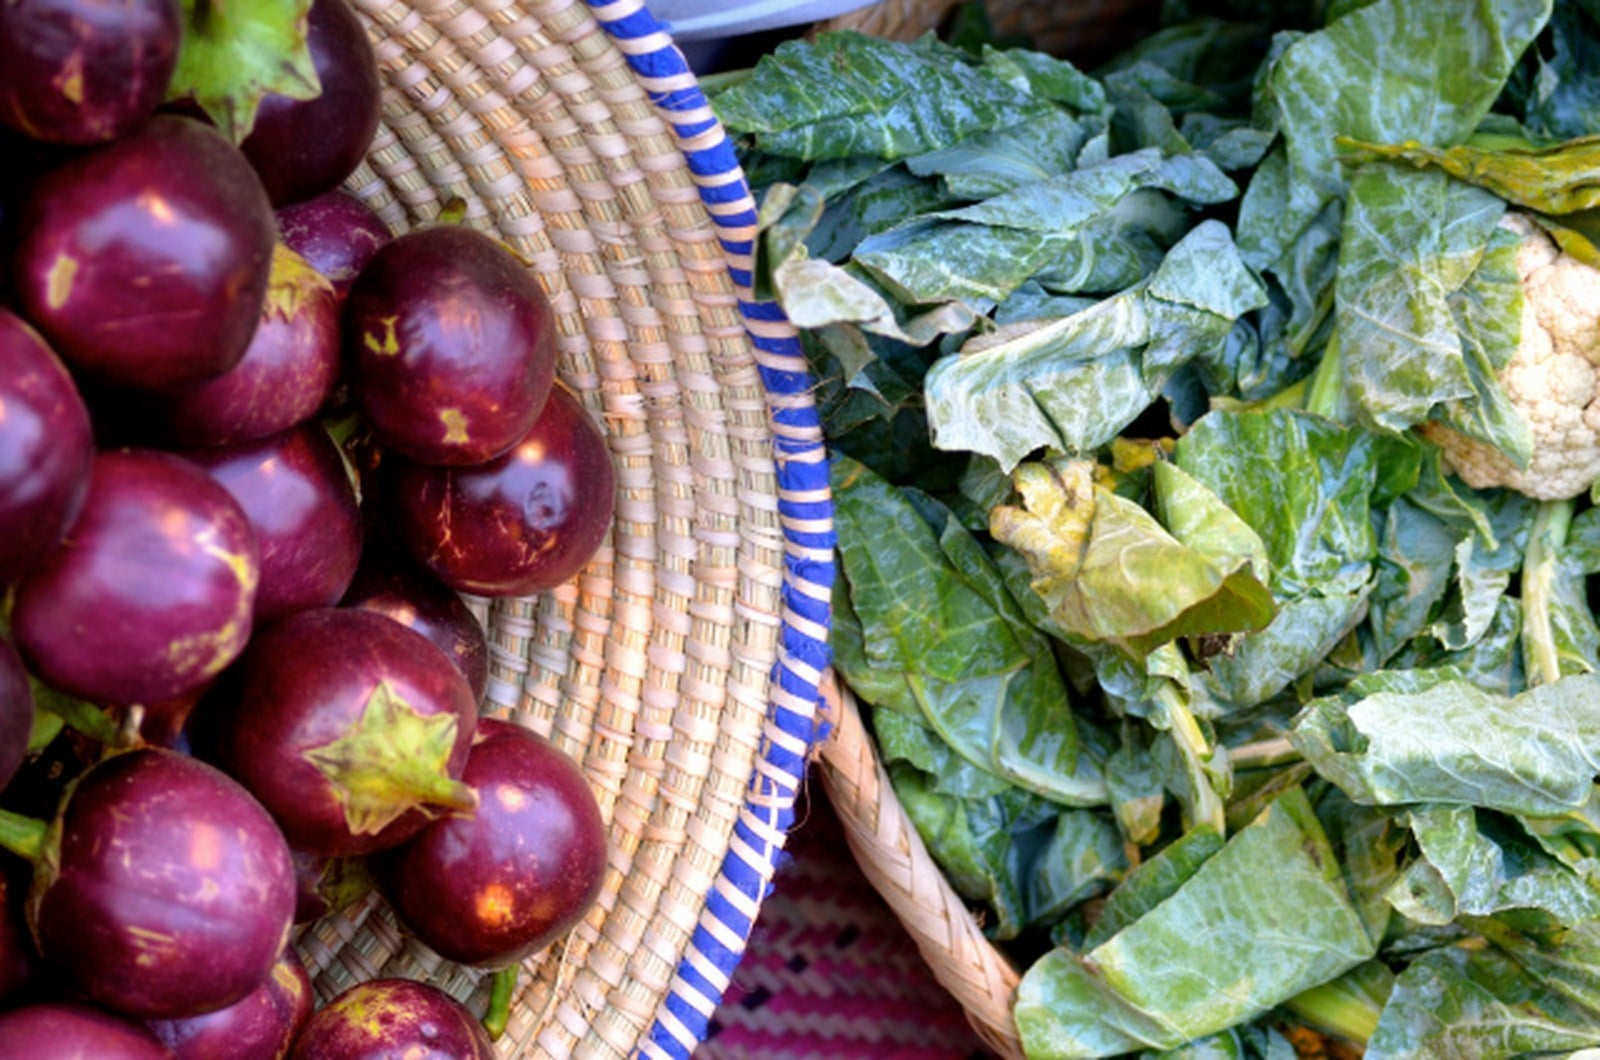 The market features healthy, organic produce.